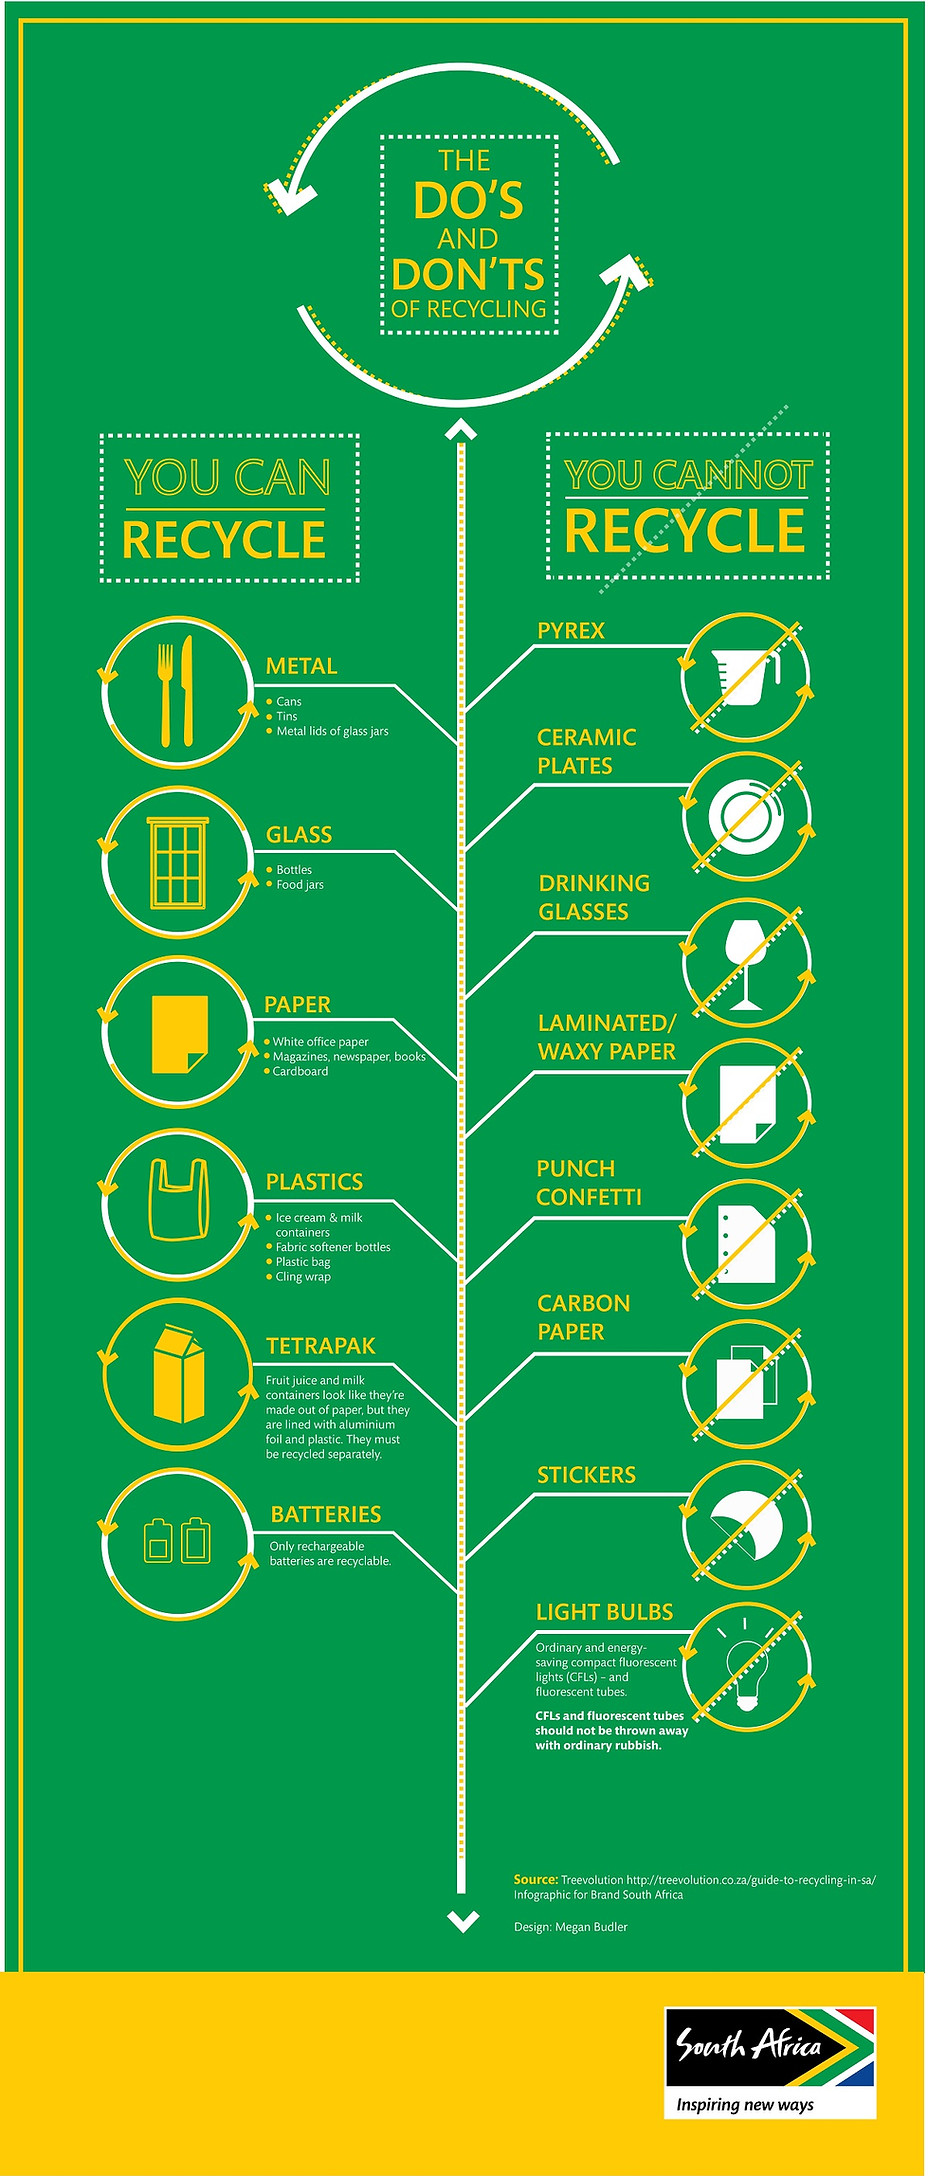 The do's and don'ts of recycling.jpg